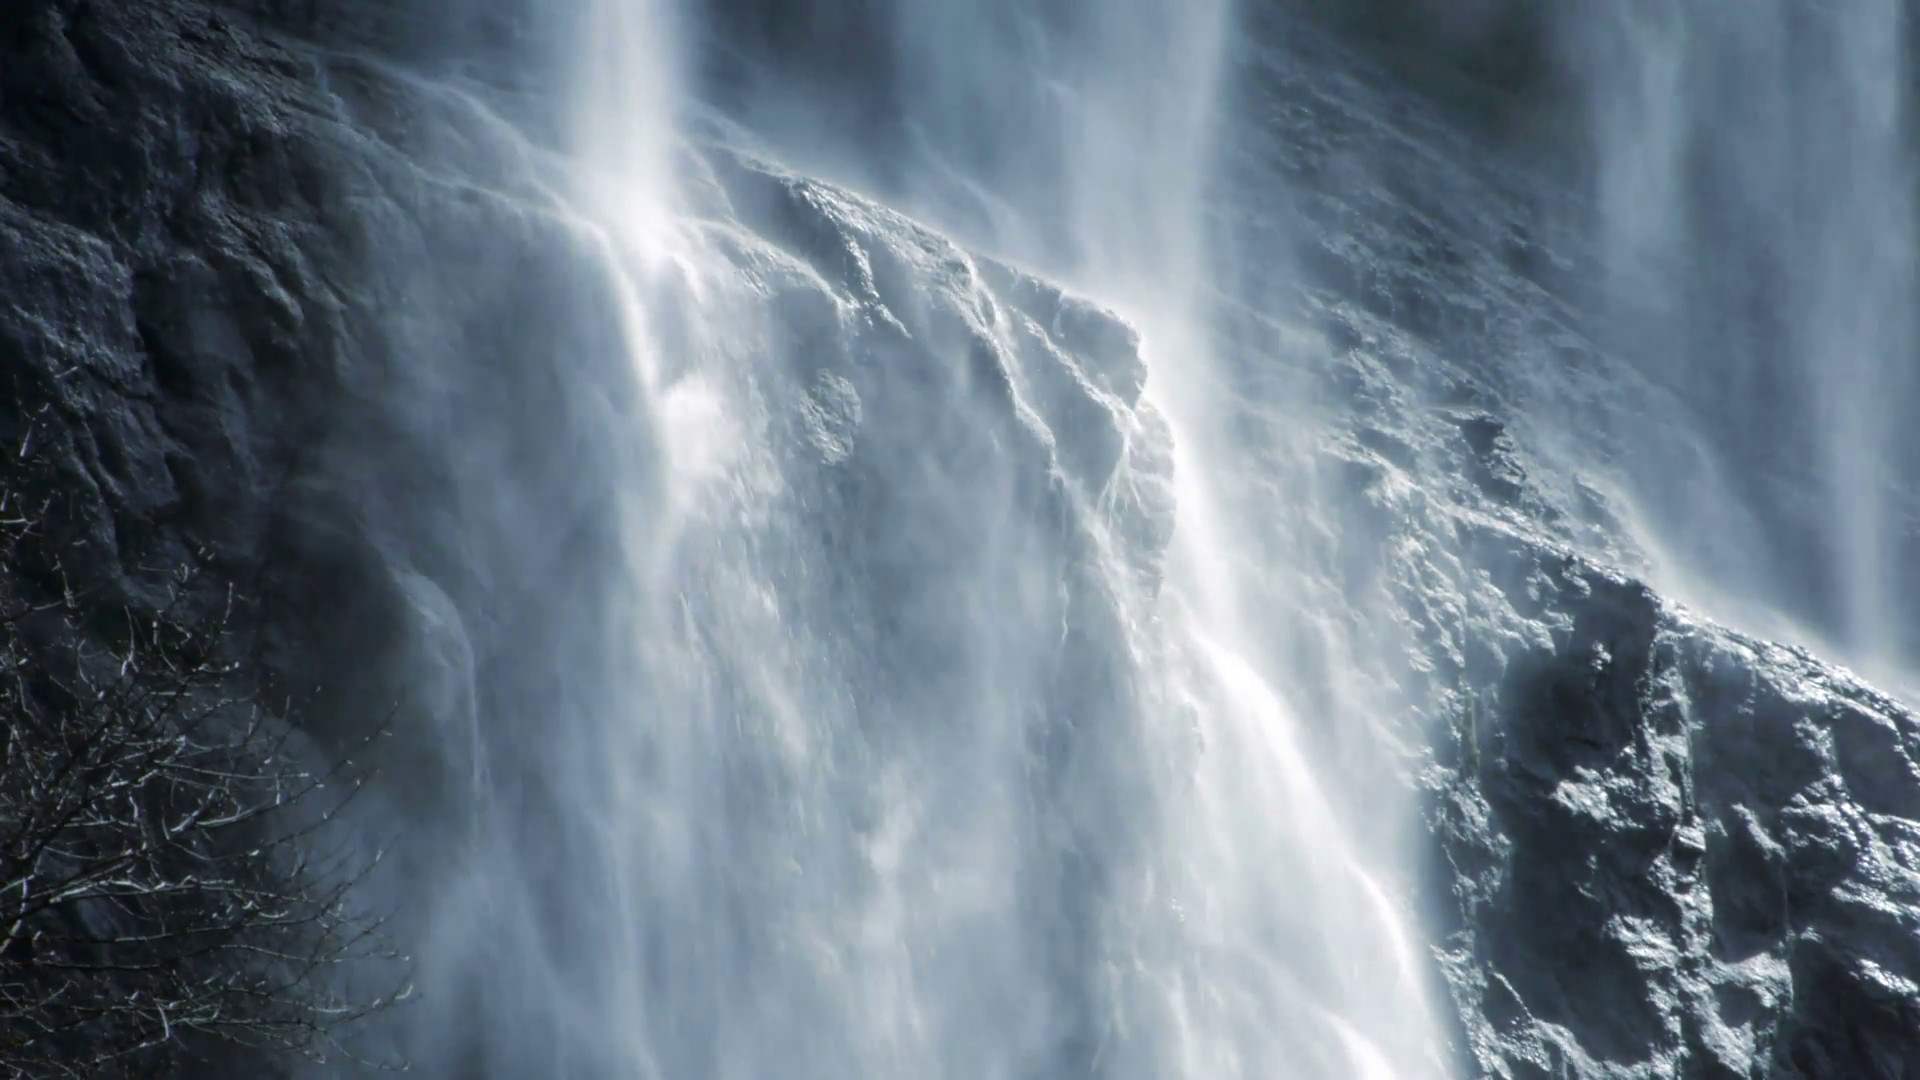 waterfall background. spring water. source. fresh clean.waterfall slow  motion Stock Video Footage – VideoBlocks